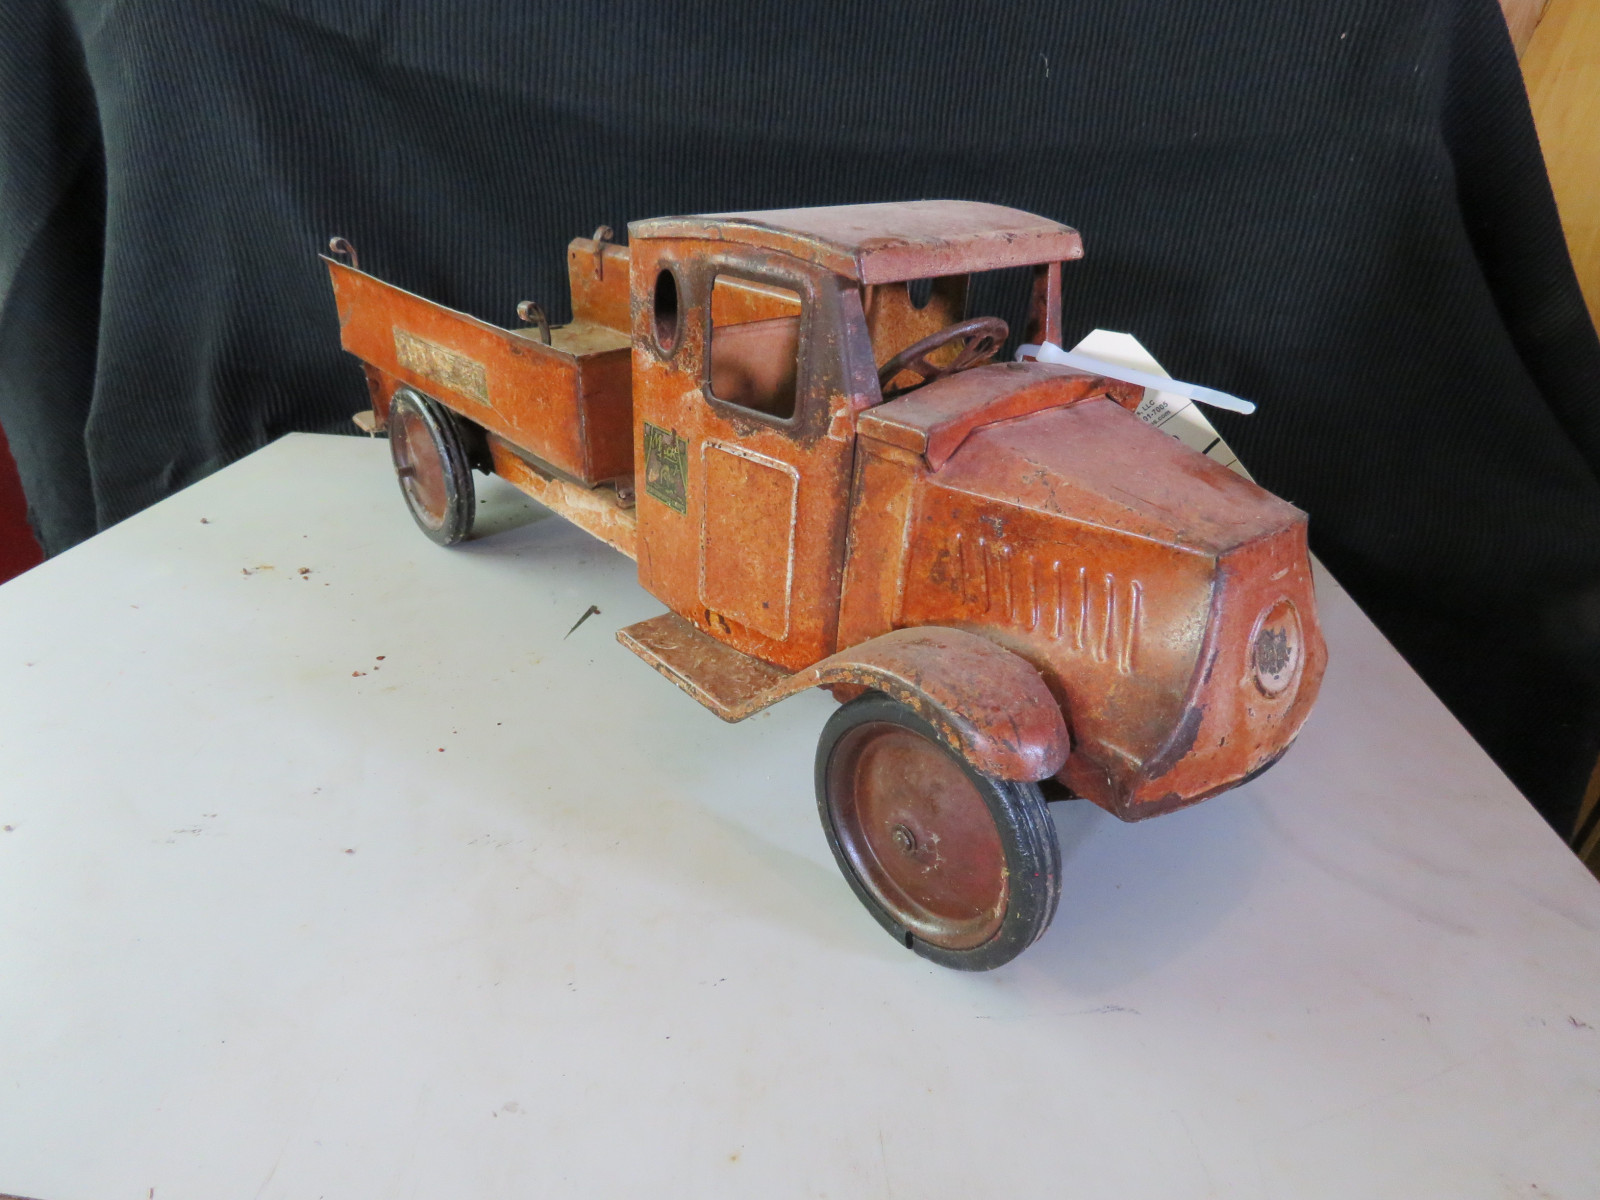 Mack Jr. Toy Truck - Image 1